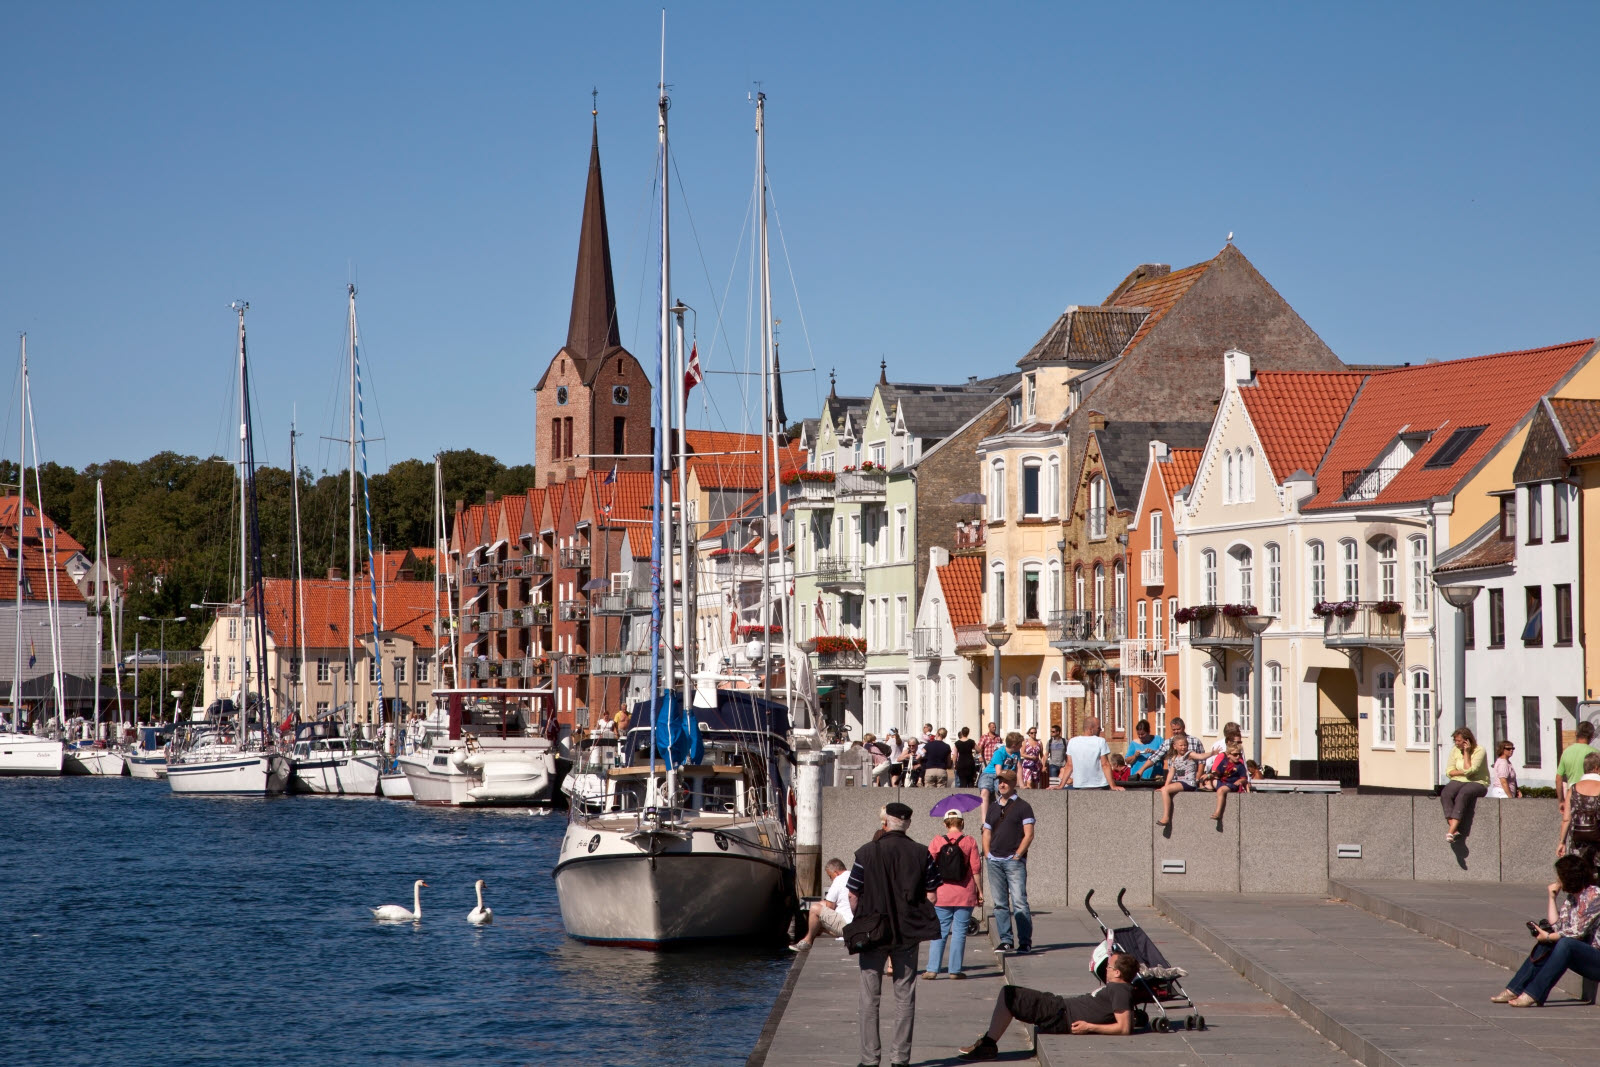 Habour life in Sonderborg